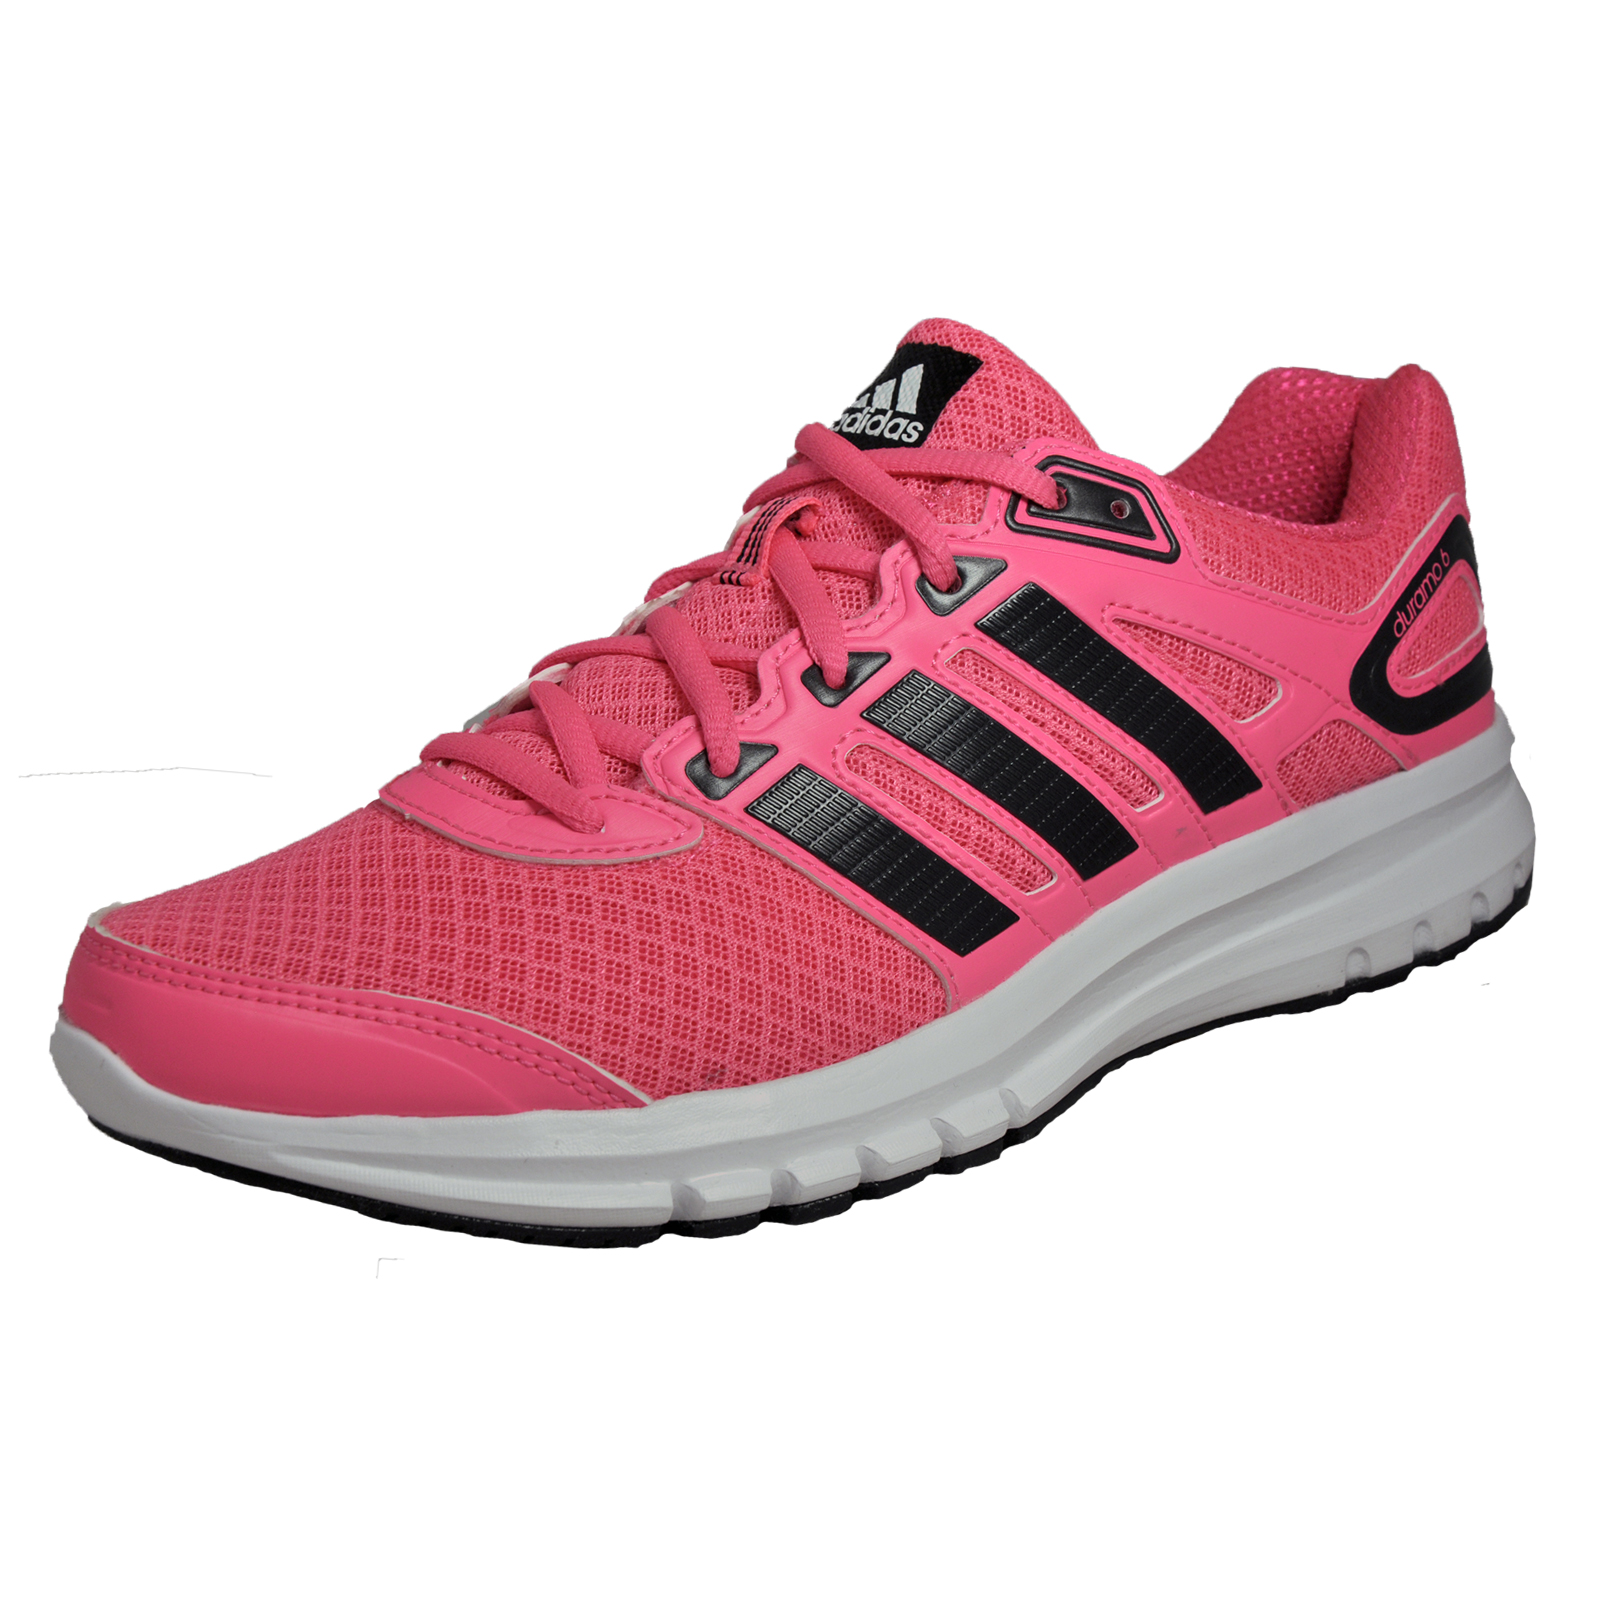 93adfee2788 Details about Adidas Duramo 6 Womens Running Shoes Fitness Gym Trainers Pink